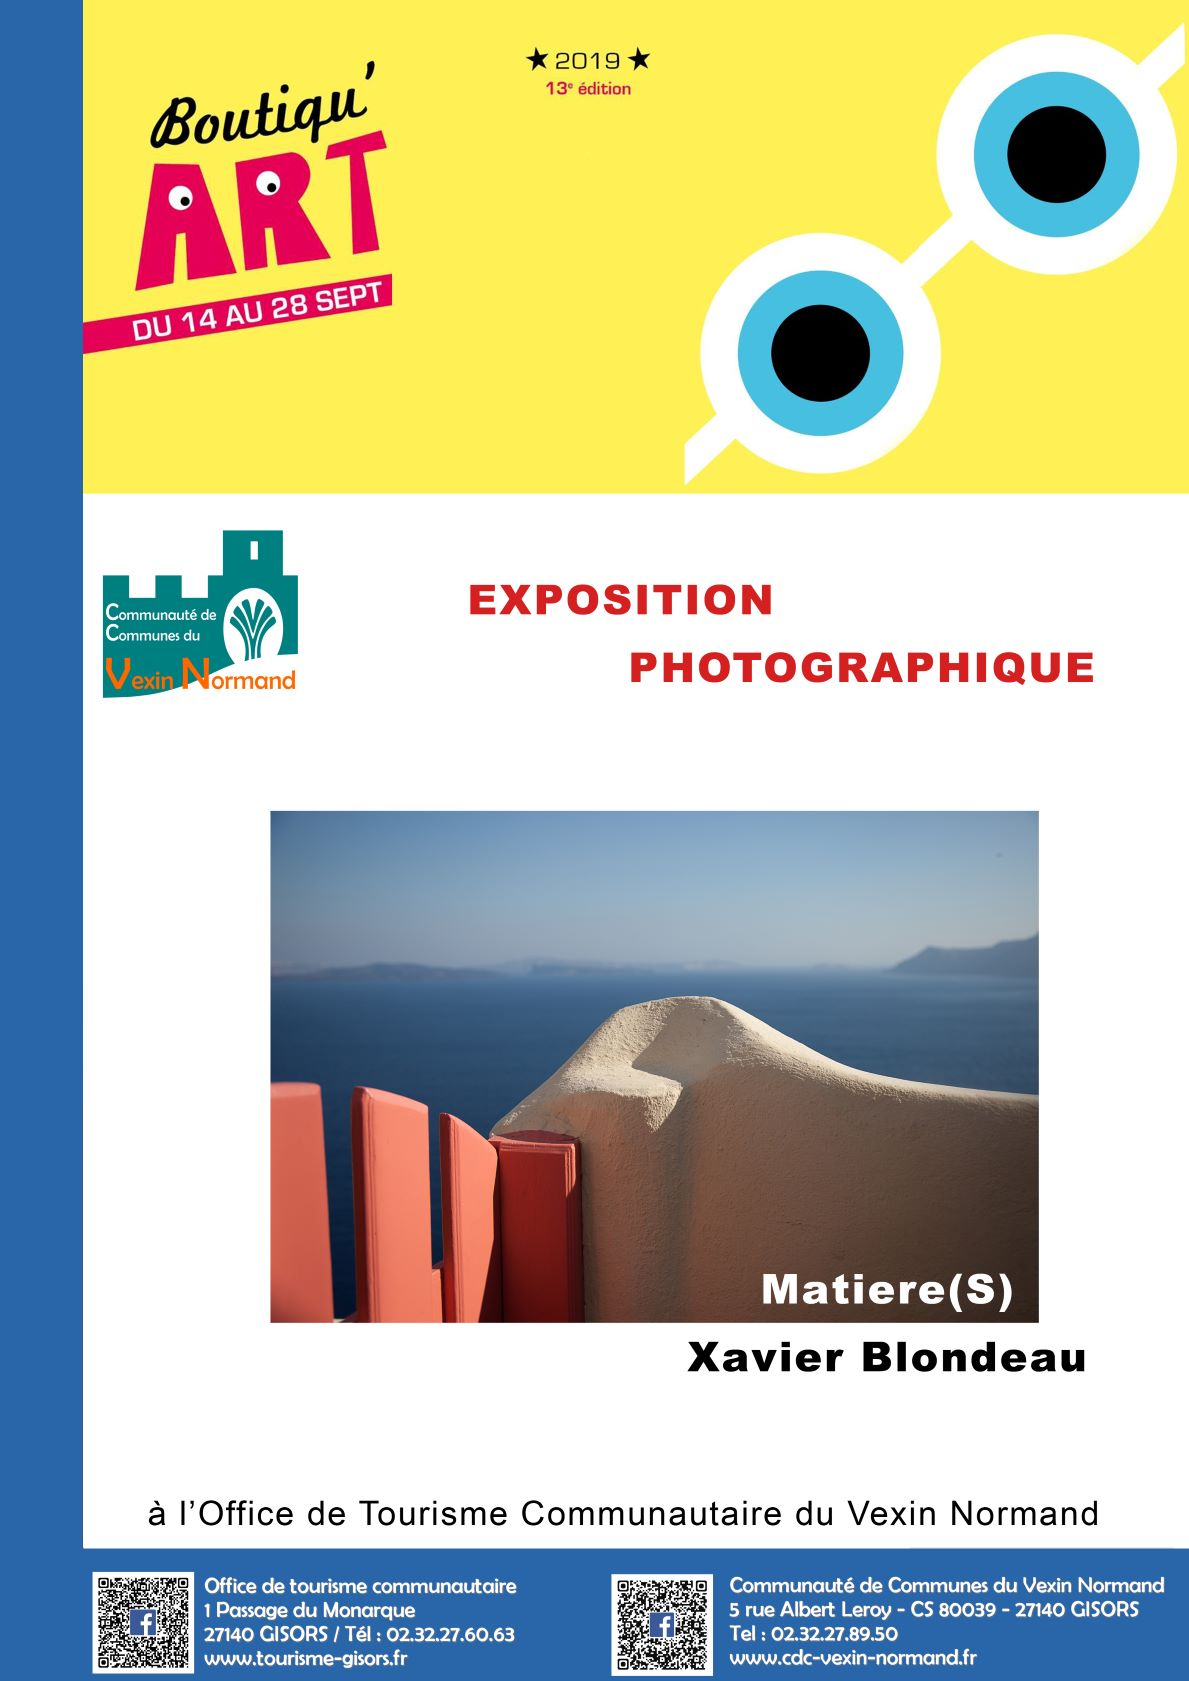 Expo boutiqu'Art 1